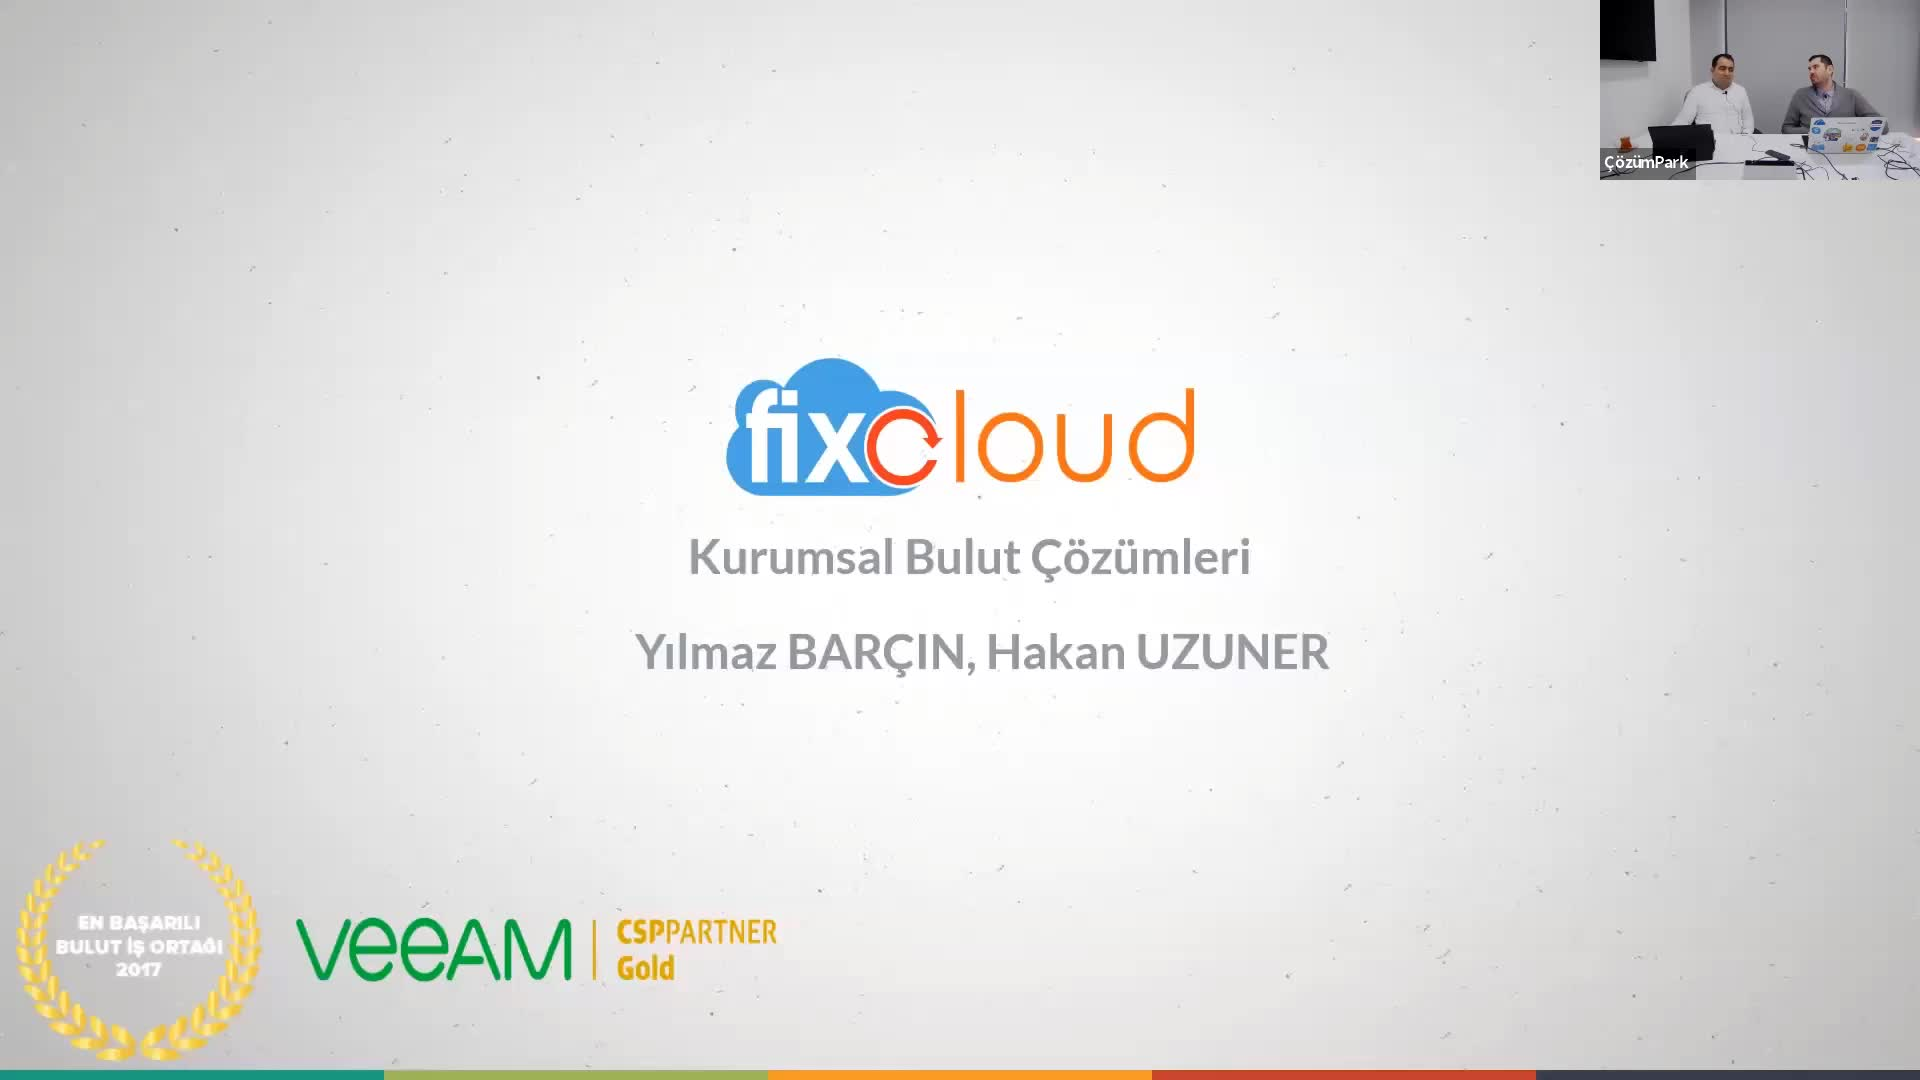 FixCloud - Private Cloud Hizmetleri